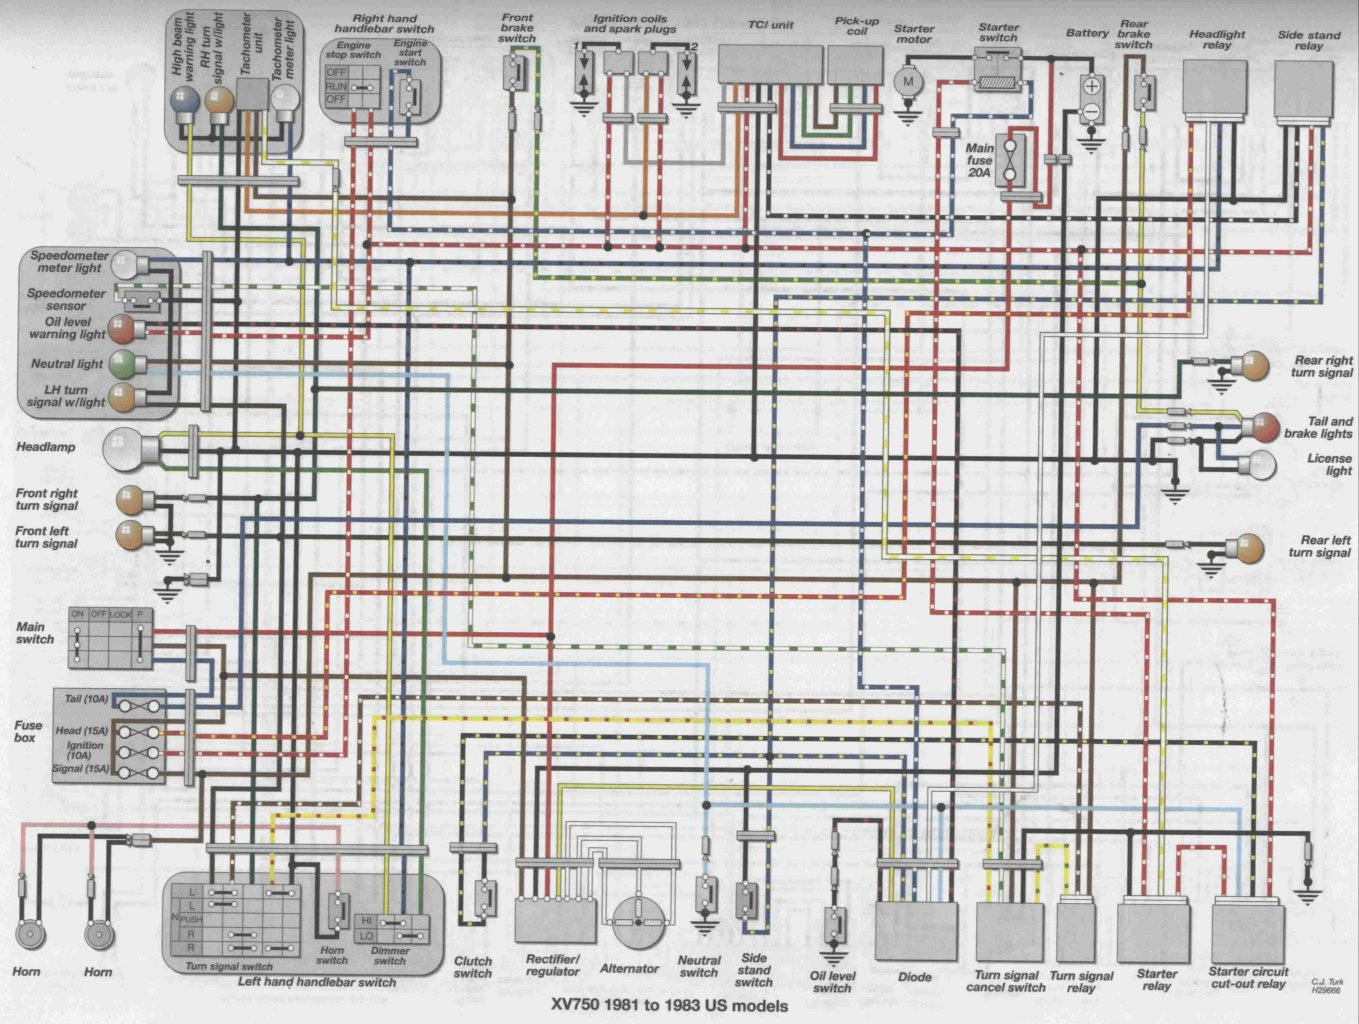 1982 Honda Goldwing Wiring Diagram Schematics Diagrams Cx500 Viragotechforum Com U2022 View Topic 1983 Xv750 Losing A